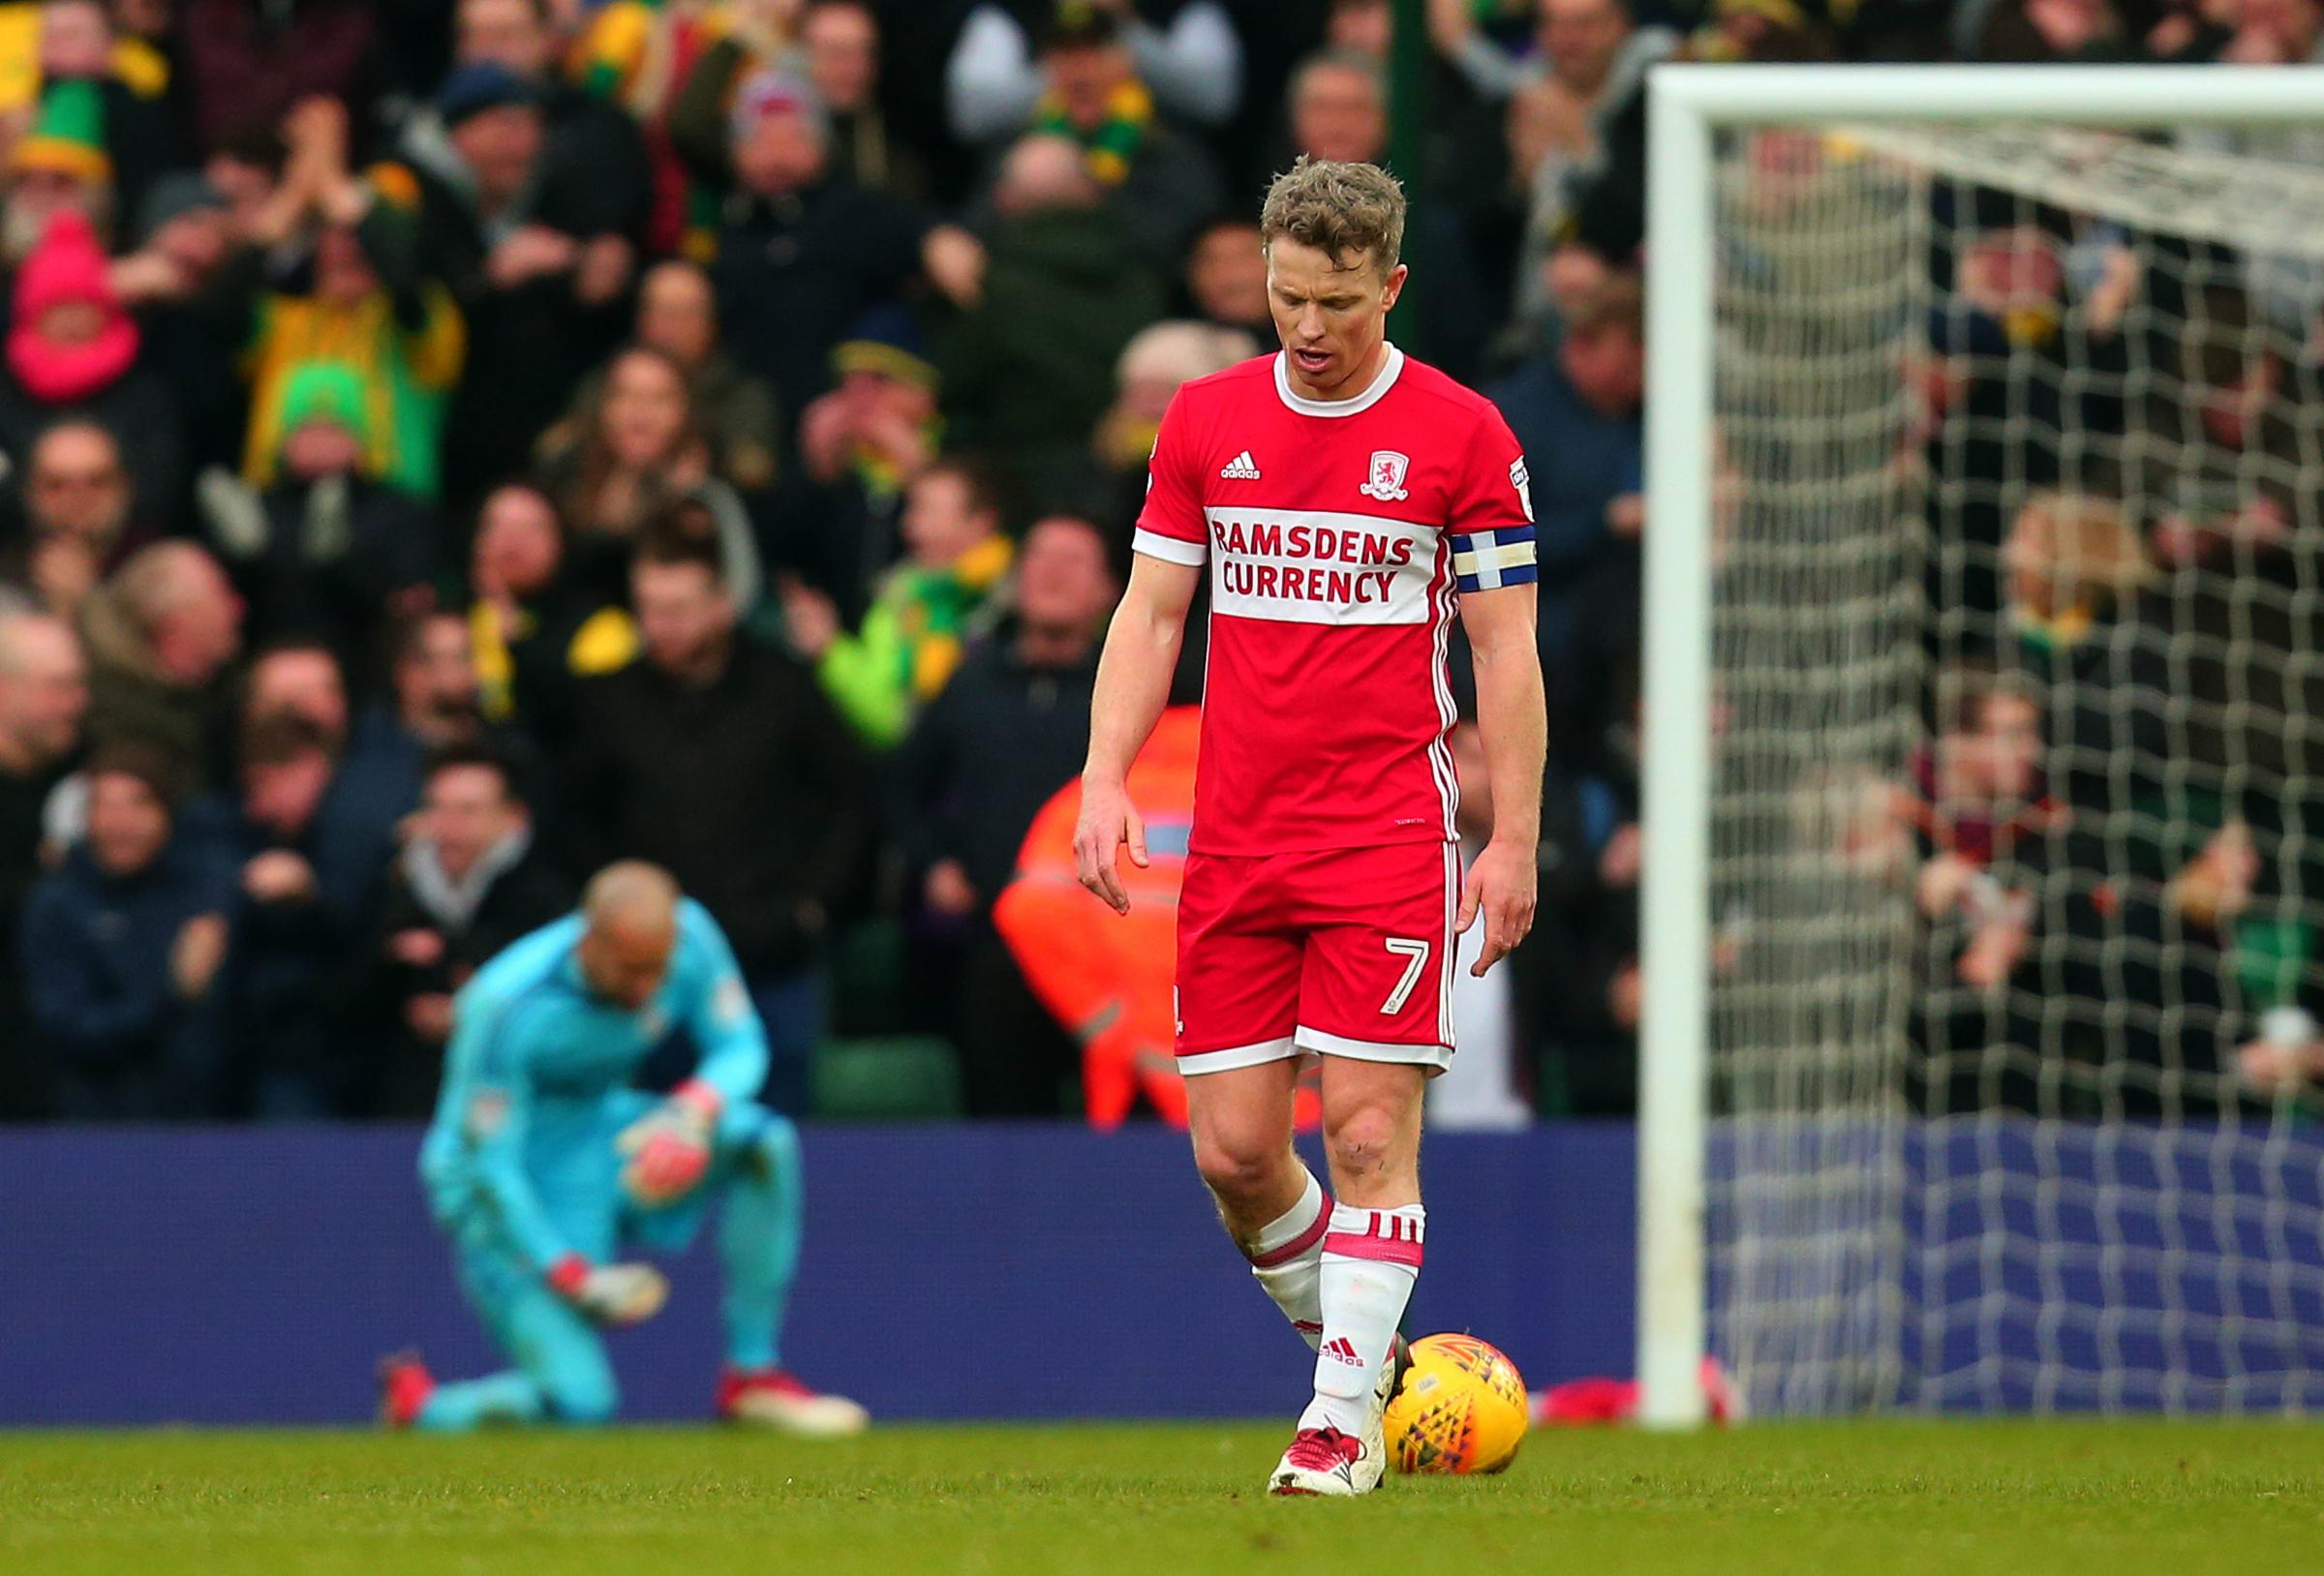 BAD DAY: Grant Leadbitter shows his disappointment during Middlesbrough's 1-0 defeat to Norwich (Picture: Joe Meredith)